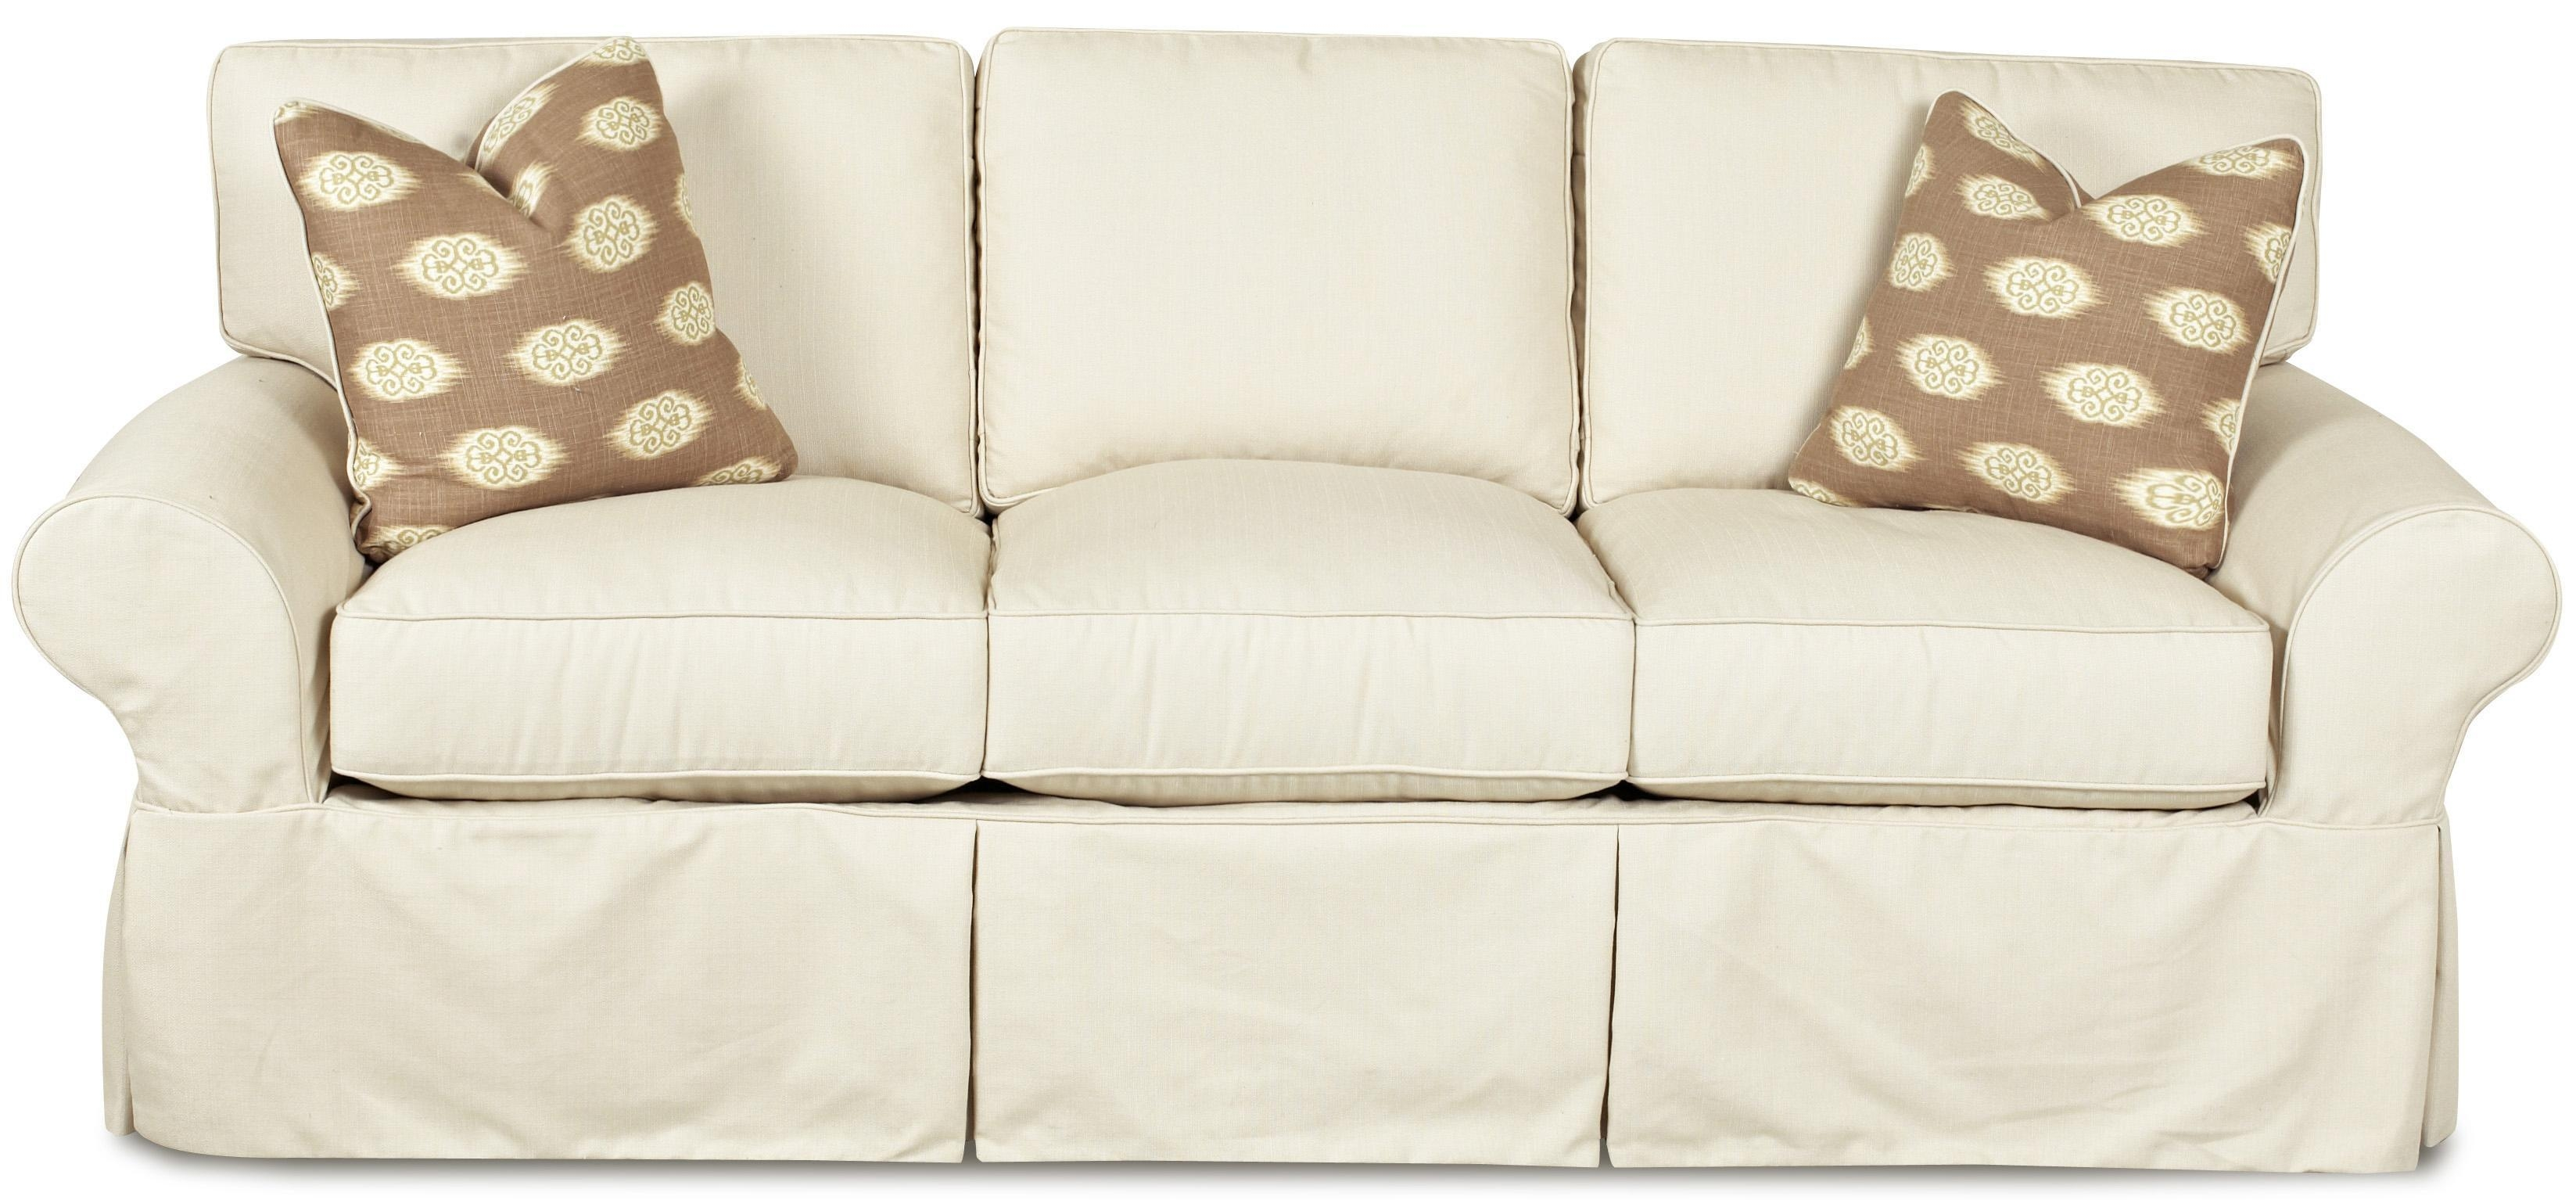 Furniture: Slipcovers For T Cushion Sofas | T Cushion Slipcovers Within Slipcovers For Chairs And Sofas (View 8 of 20)